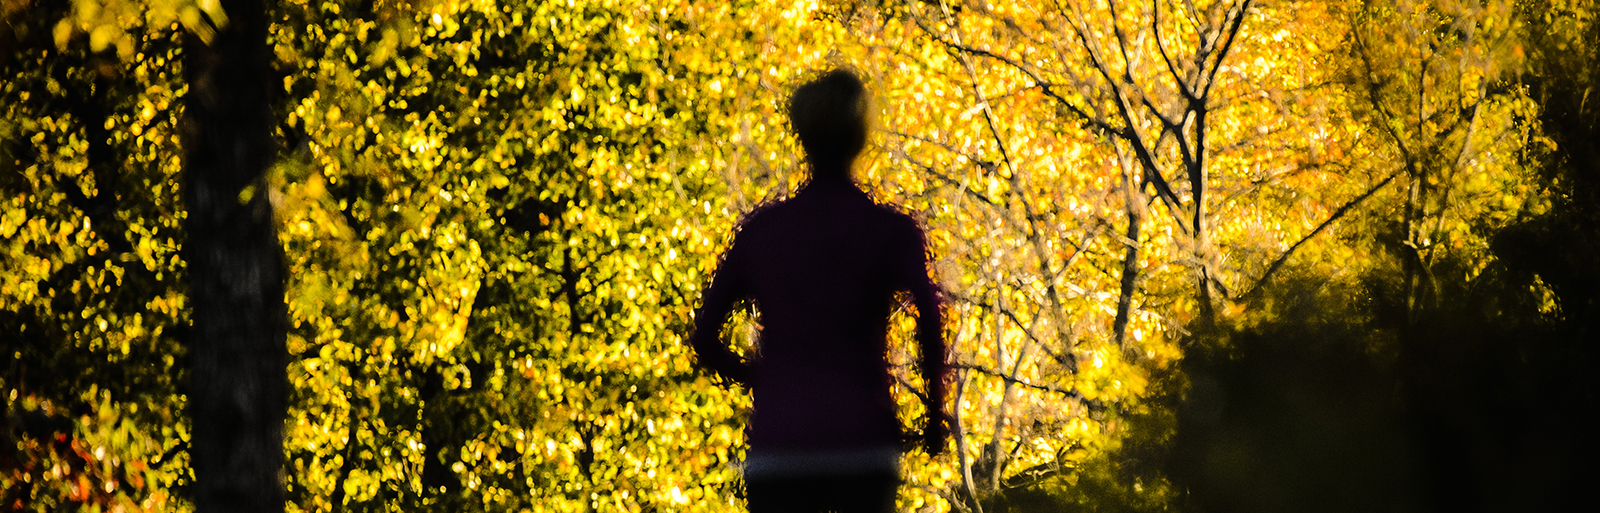 Seen in impressionist-view, a woman runs out of the shadows along a path of golden-hued tree foliage at Picnic Point at the University of Wisconsin-Madison during autumn on Oct. 14, 2015. The area is part of UW-Madison's Lakeshore Nature Preserve. (Photo by Jeff Miller/UW-Madison)